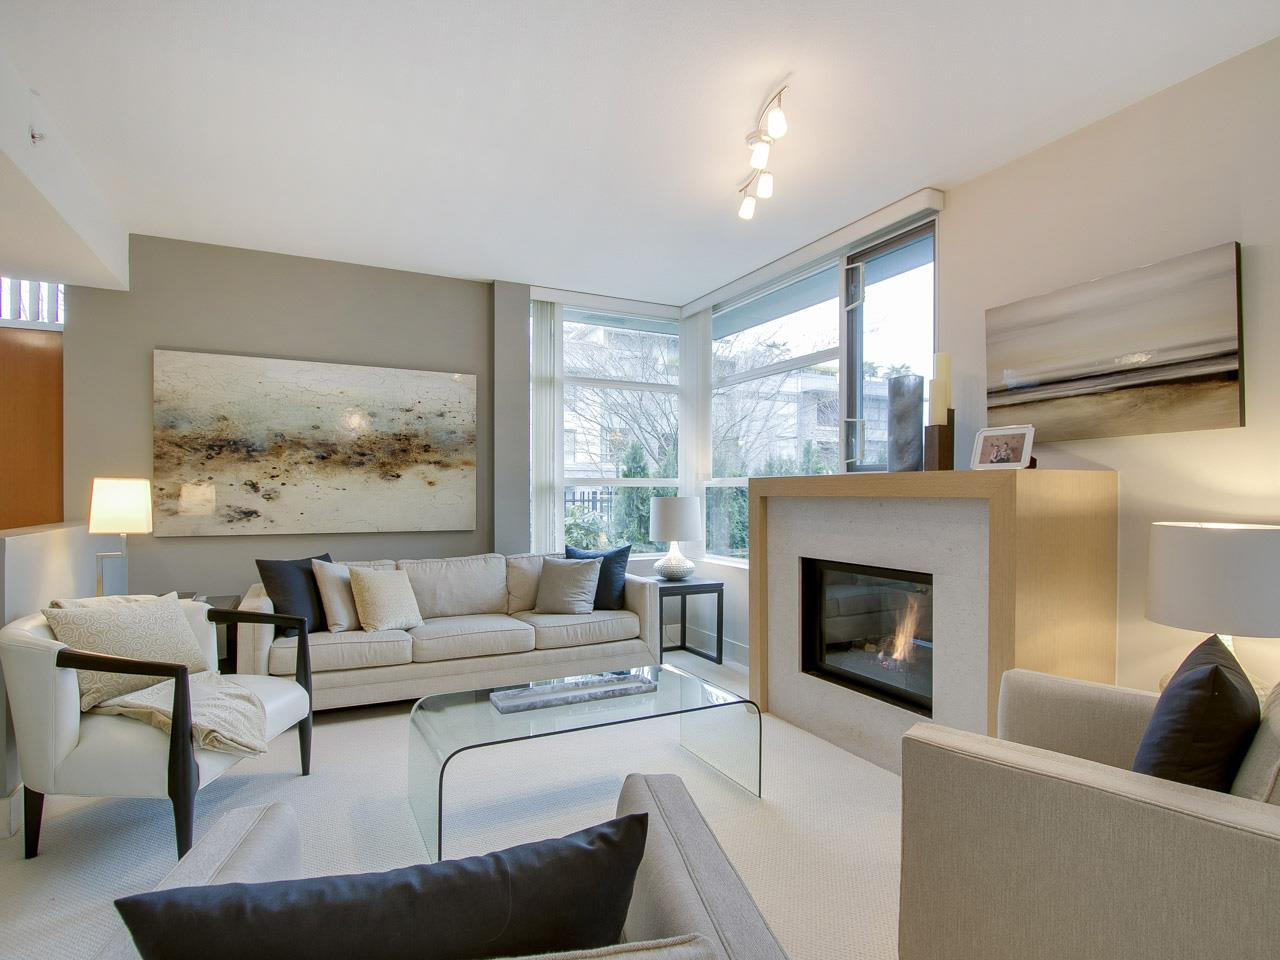 Photo 3: 113 6018 IONA DRIVE in Vancouver: University VW Townhouse for sale (Vancouver West)  : MLS® # R2146501